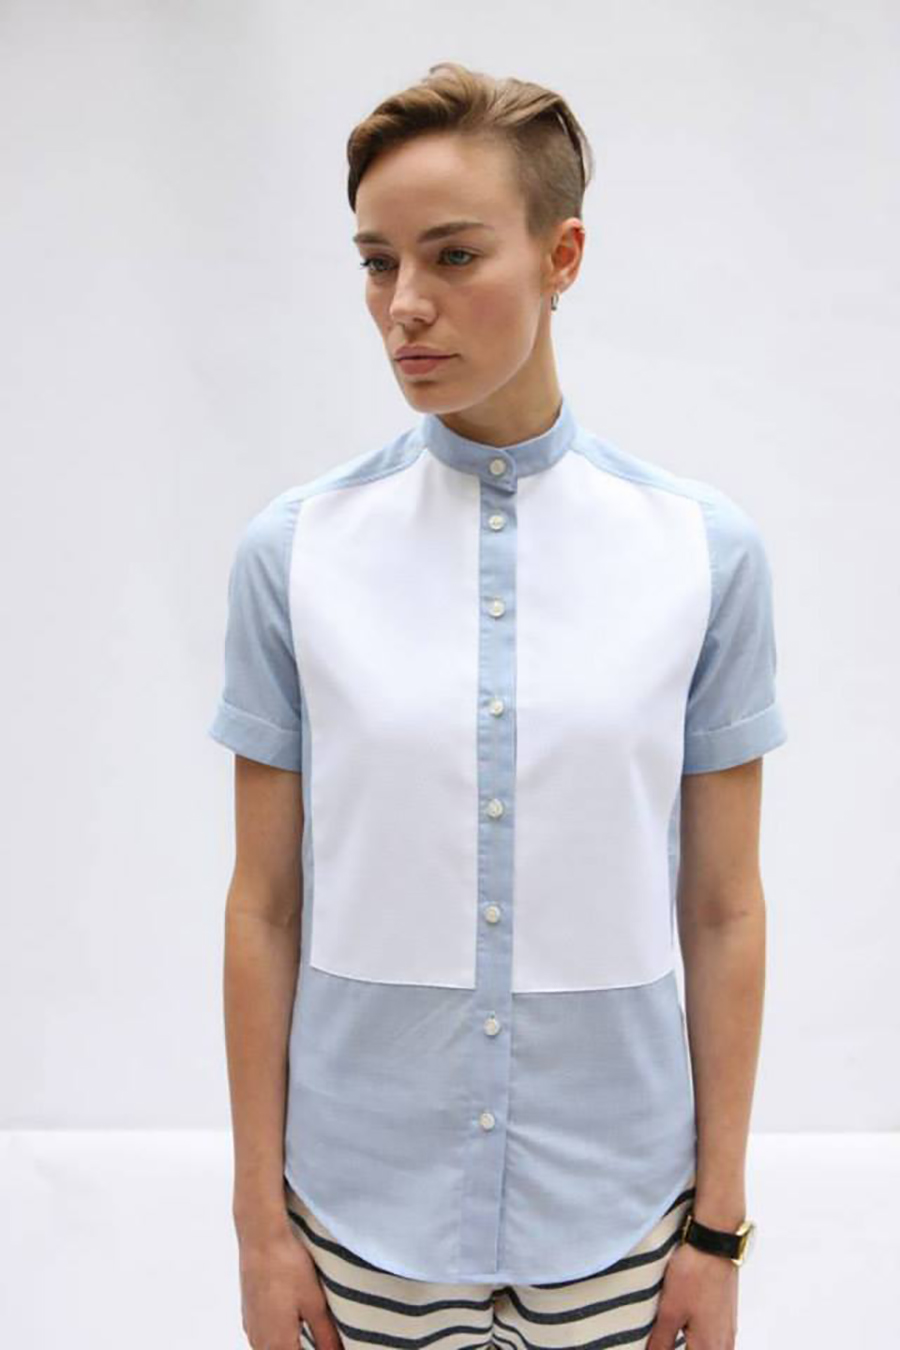 blue & white dress shirt.jpg